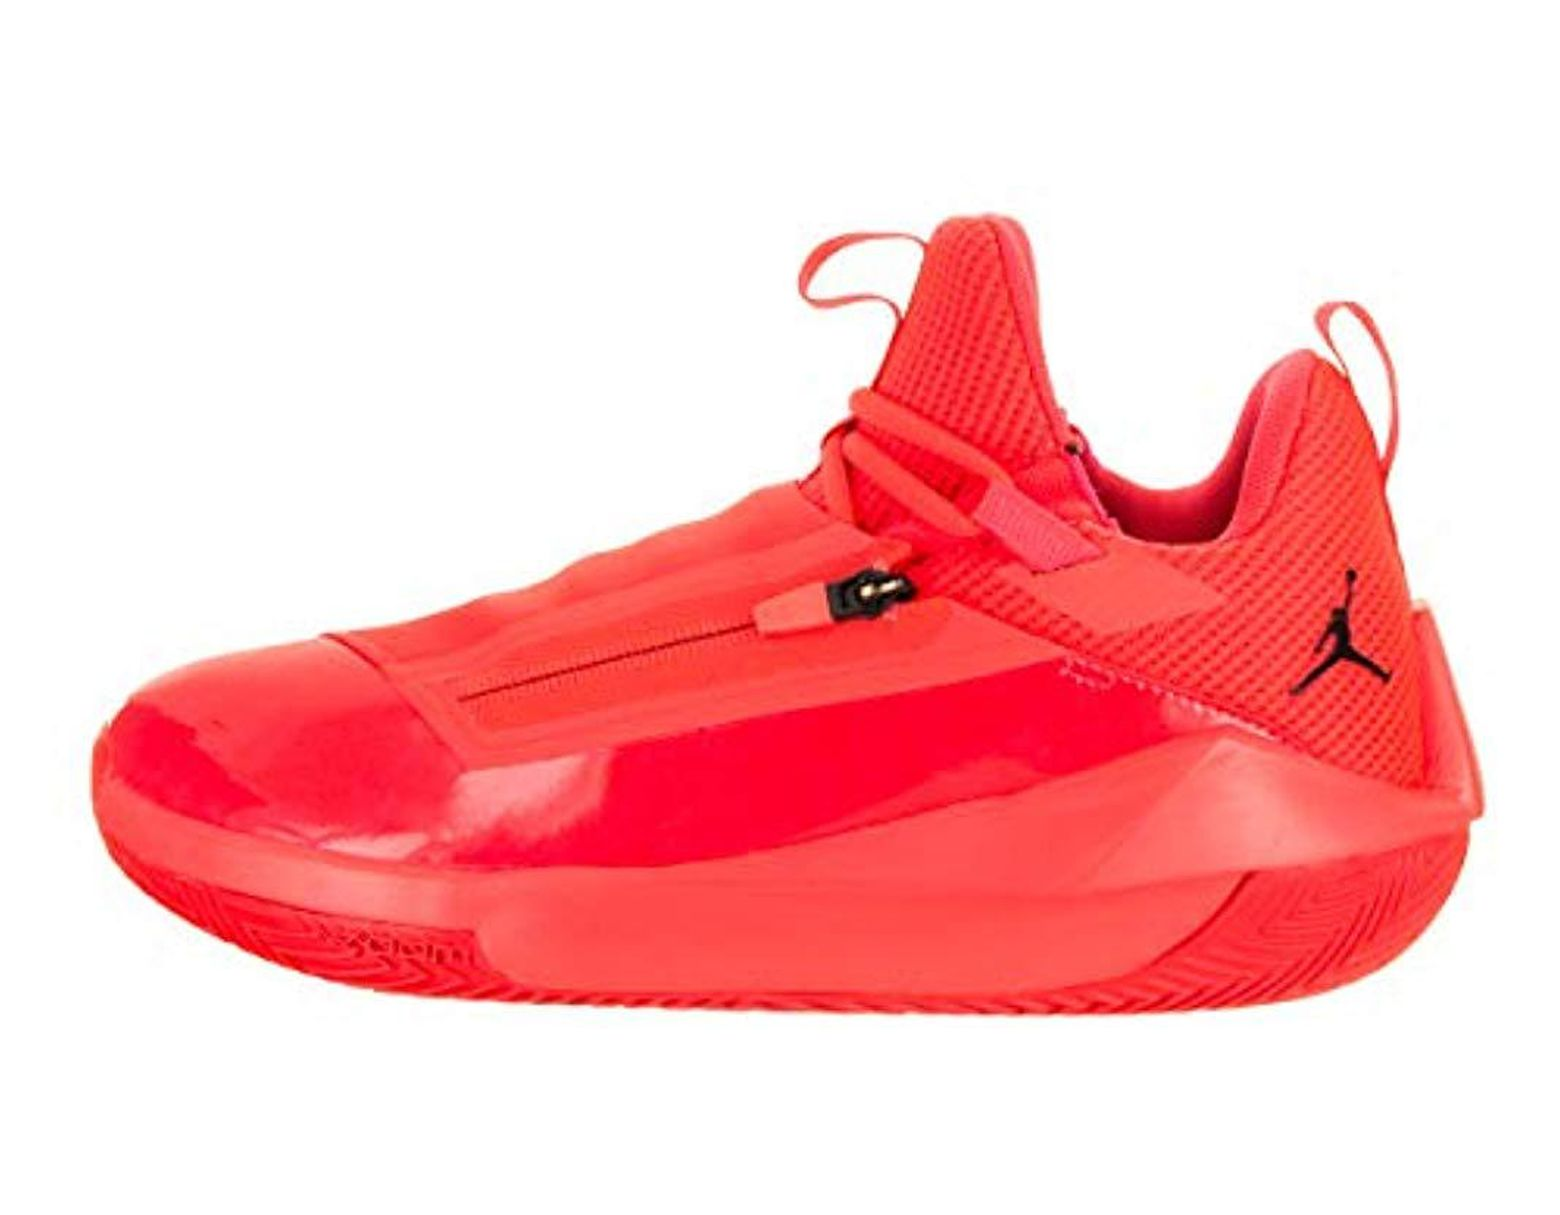 5b27fdce8ad6 Nike Jordan Jumpman Hustle Basketball Shoes in Red for Men - Save 22% - Lyst